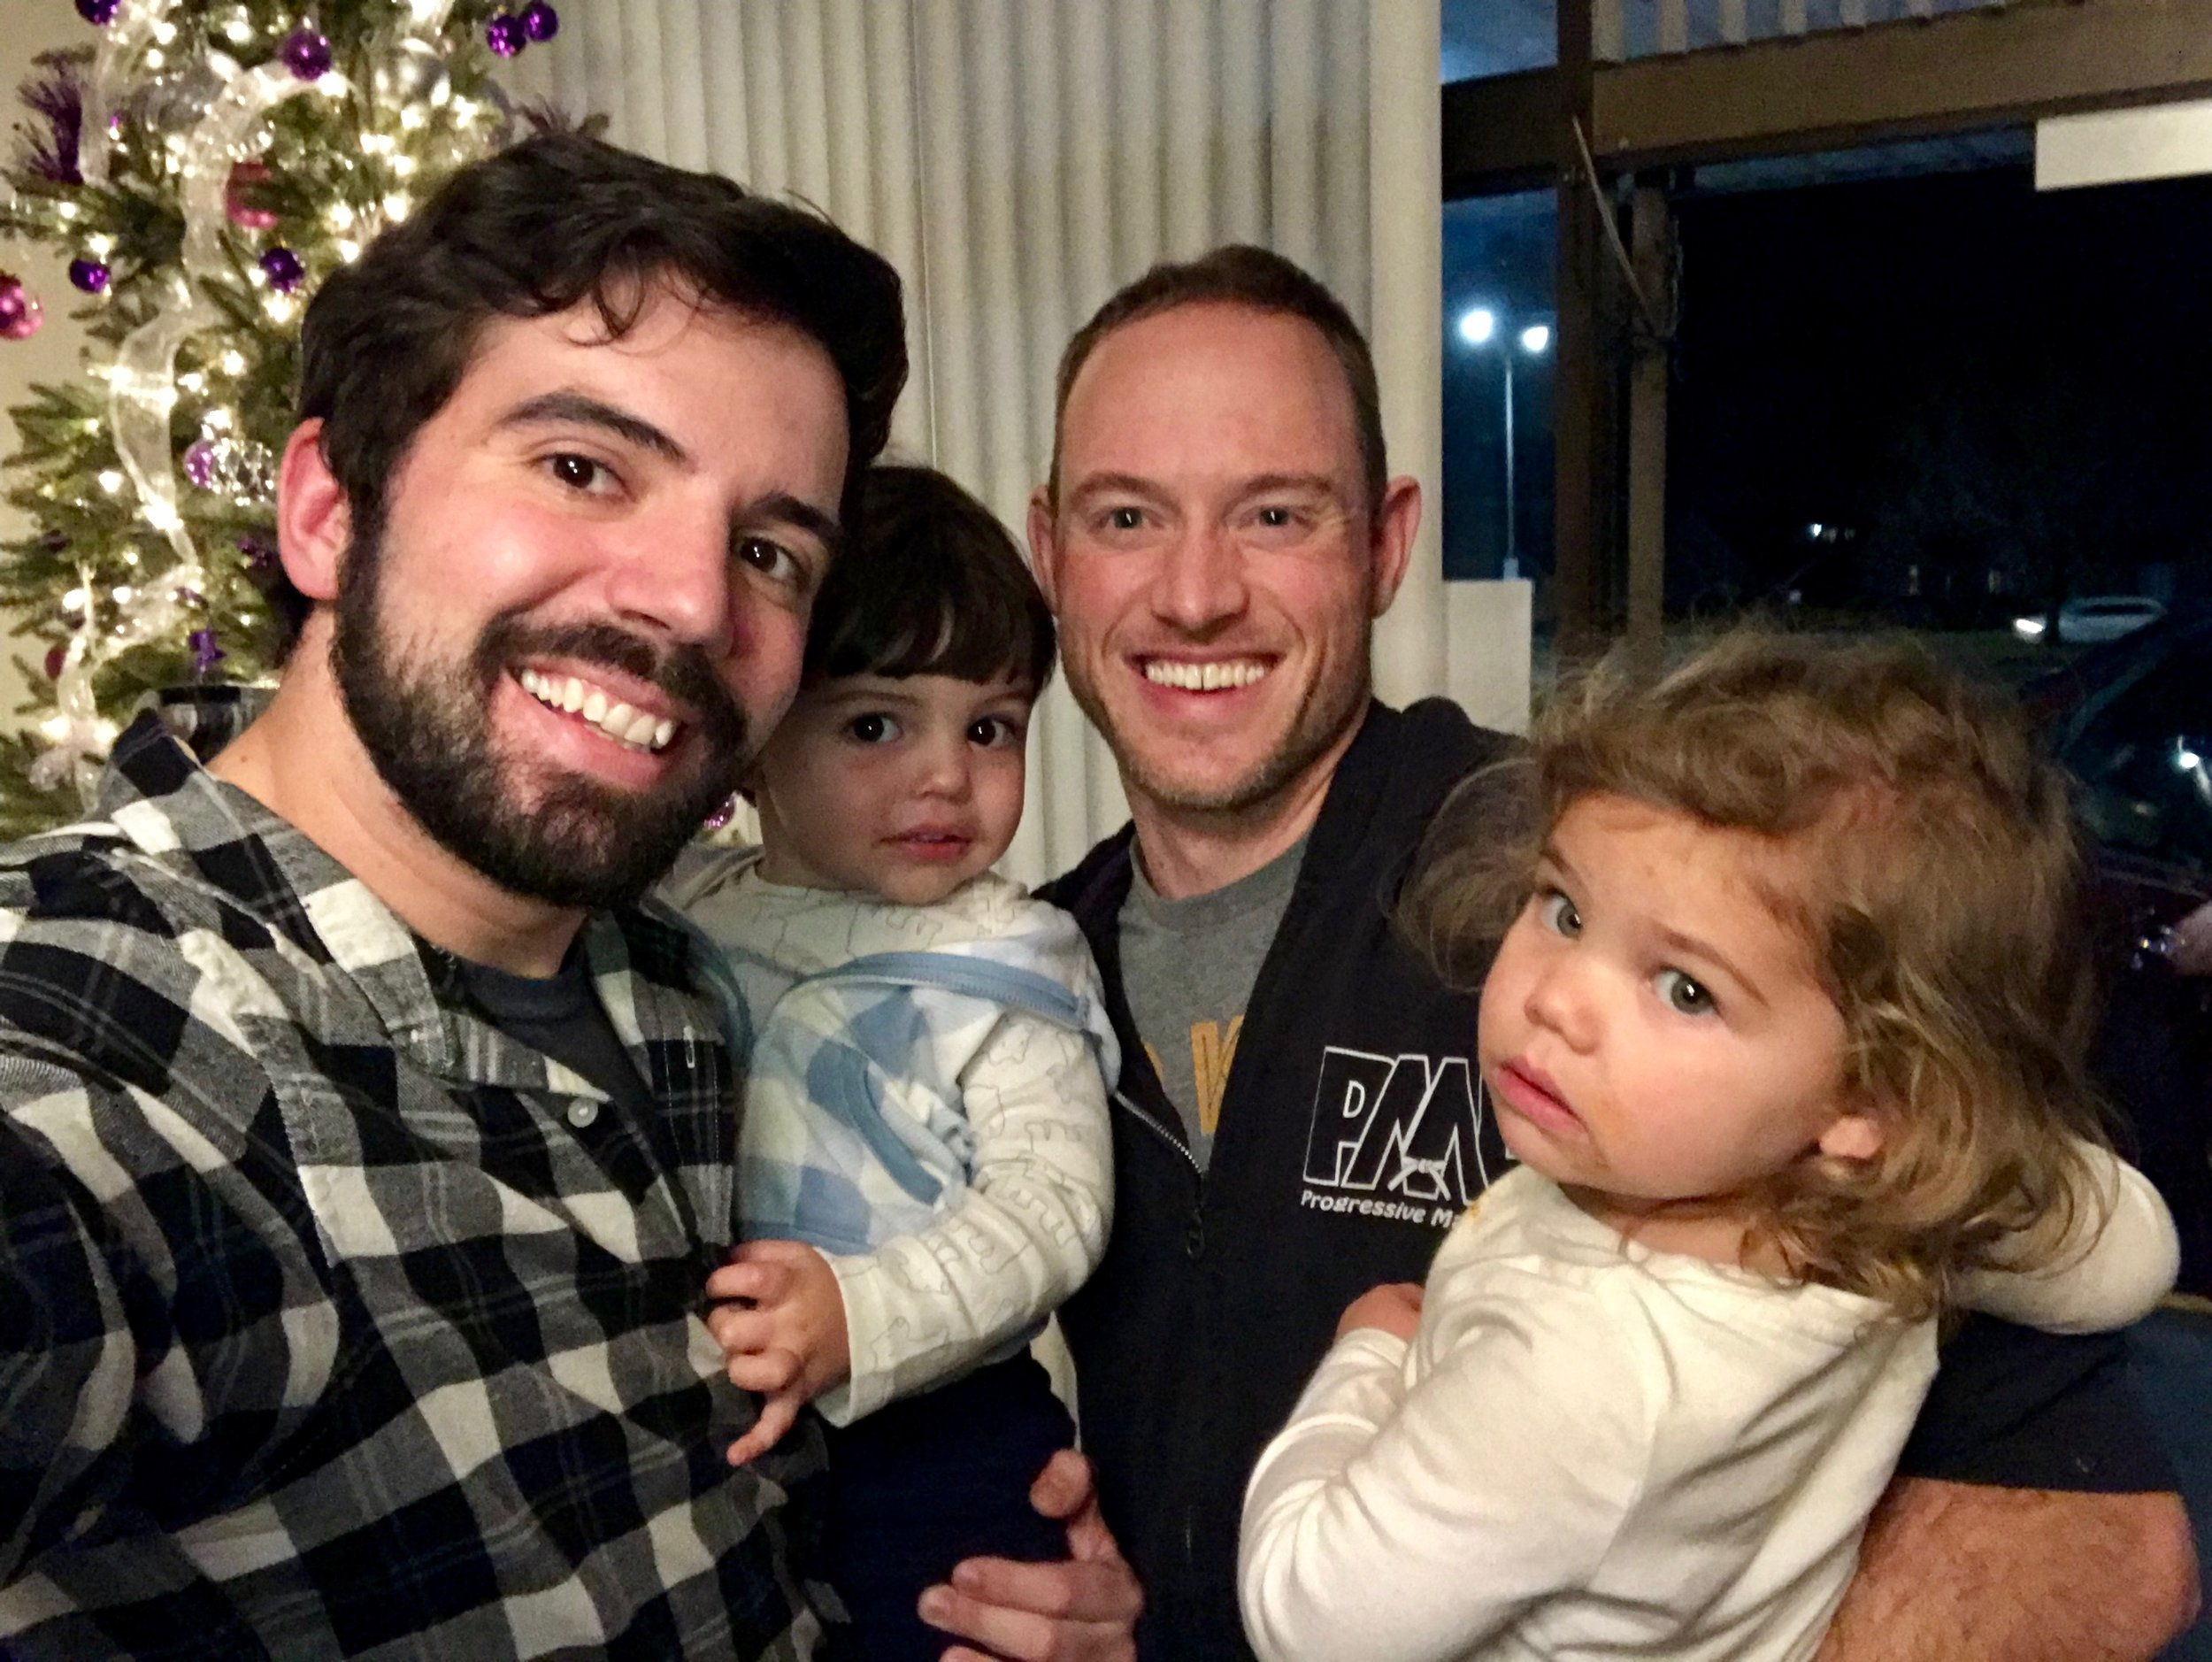 Sempai Matt and his daughter, Wylie, alongside his instructor, David Corrigan, and his son, Auggie. Wylie and Auggie shared the same due date!